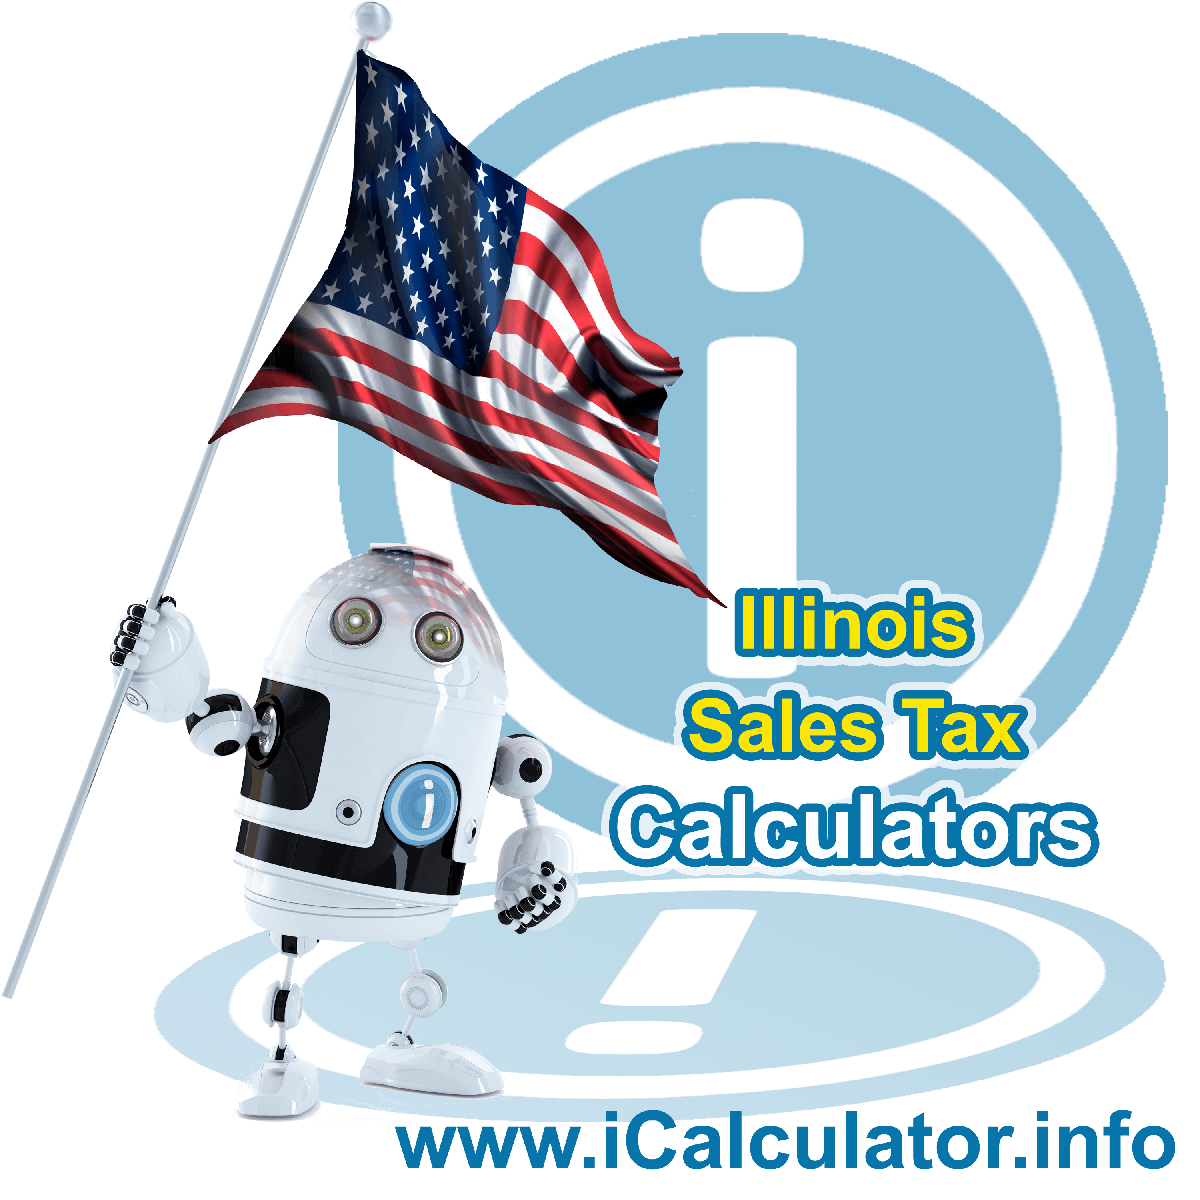 Bethalto Sales Rates: This image illustrates a calculator robot calculating Bethalto sales tax manually using the Bethalto Sales Tax Formula. You can use this information to calculate Bethalto Sales Tax manually or use the Bethalto Sales Tax Calculator to calculate sales tax online.